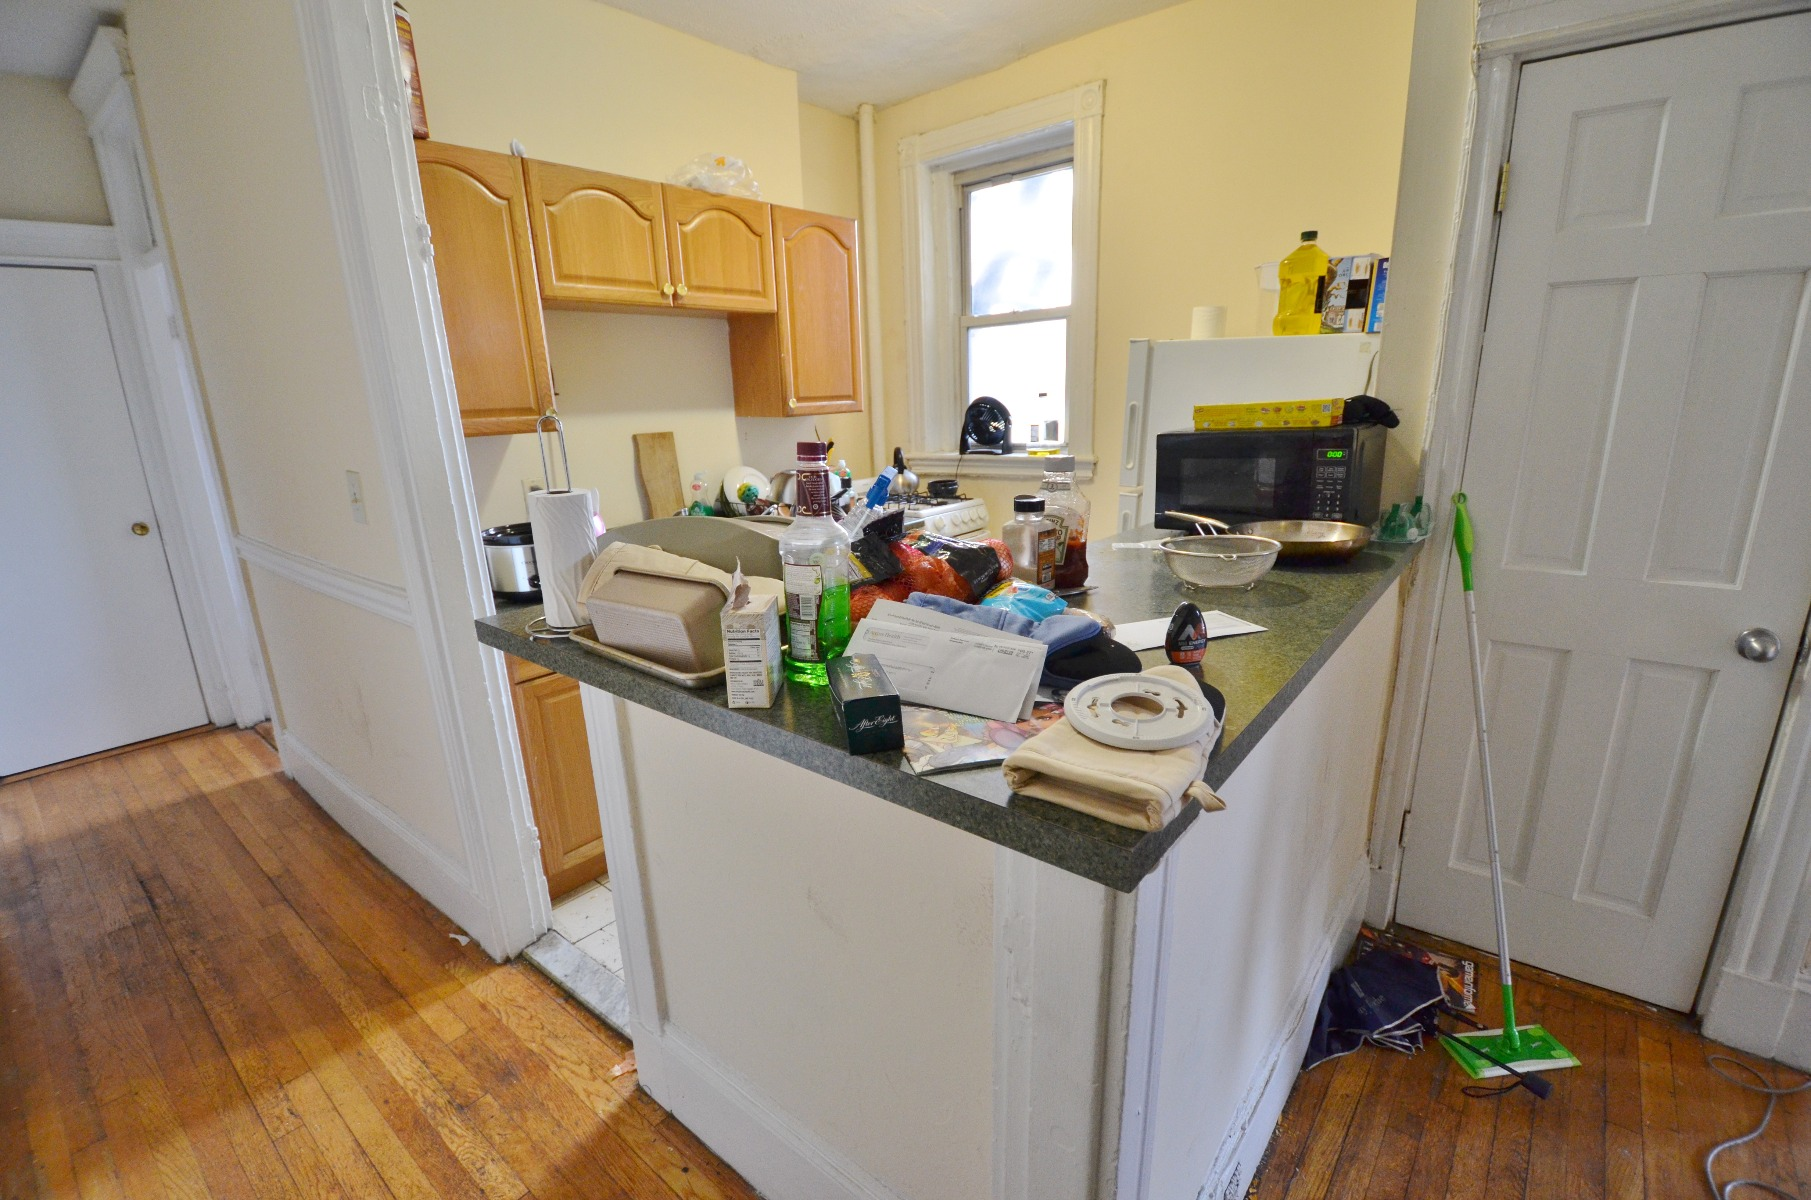 Avail 9/1 - Renovated Sunny Amazing 3BR Split on Peterborough St